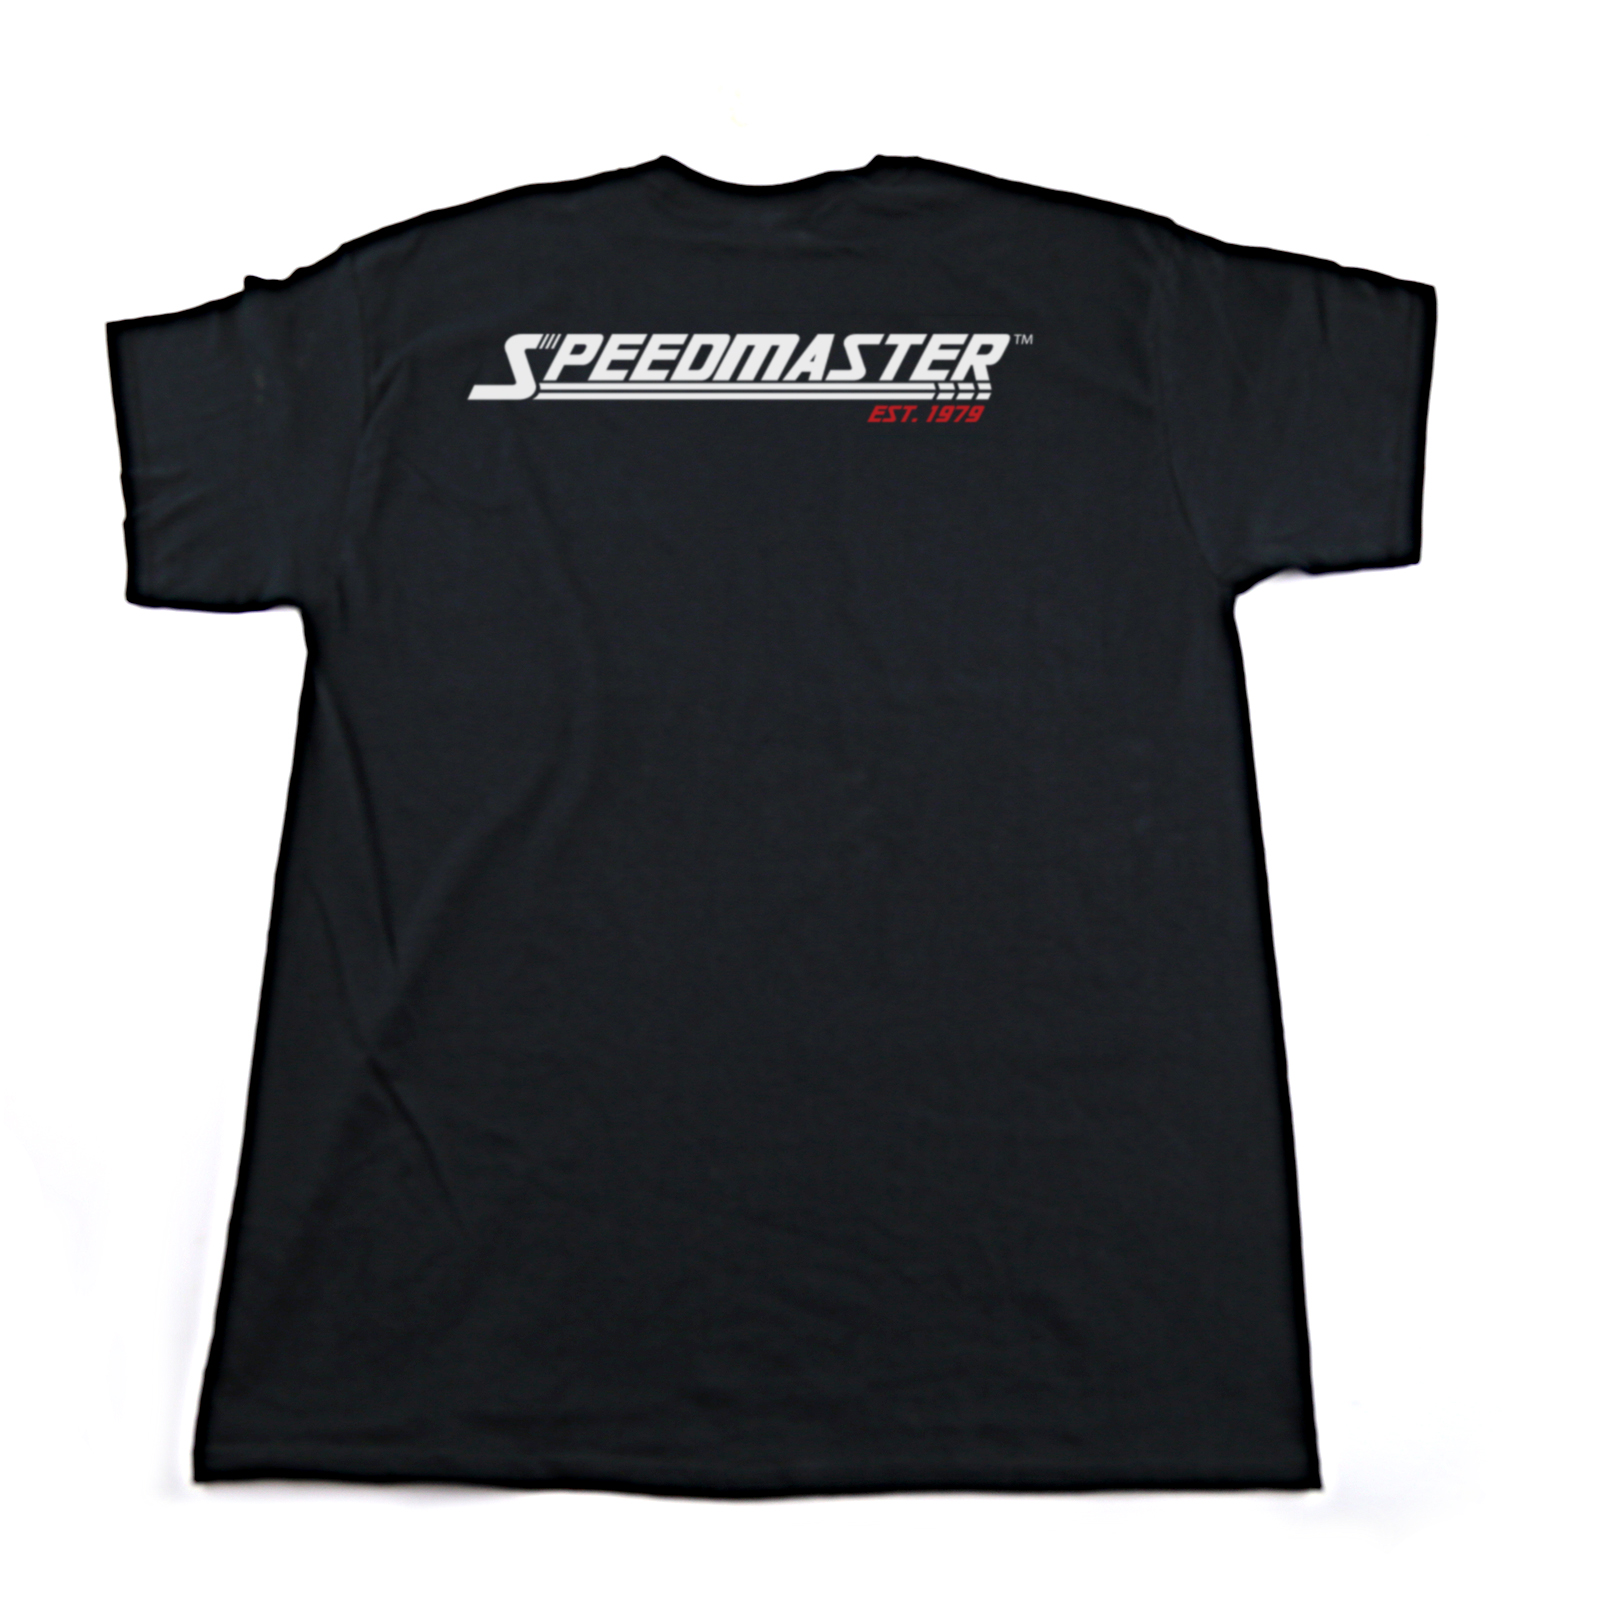 Speedmaster Black Cotton T-Shirt - XX-Large XXL